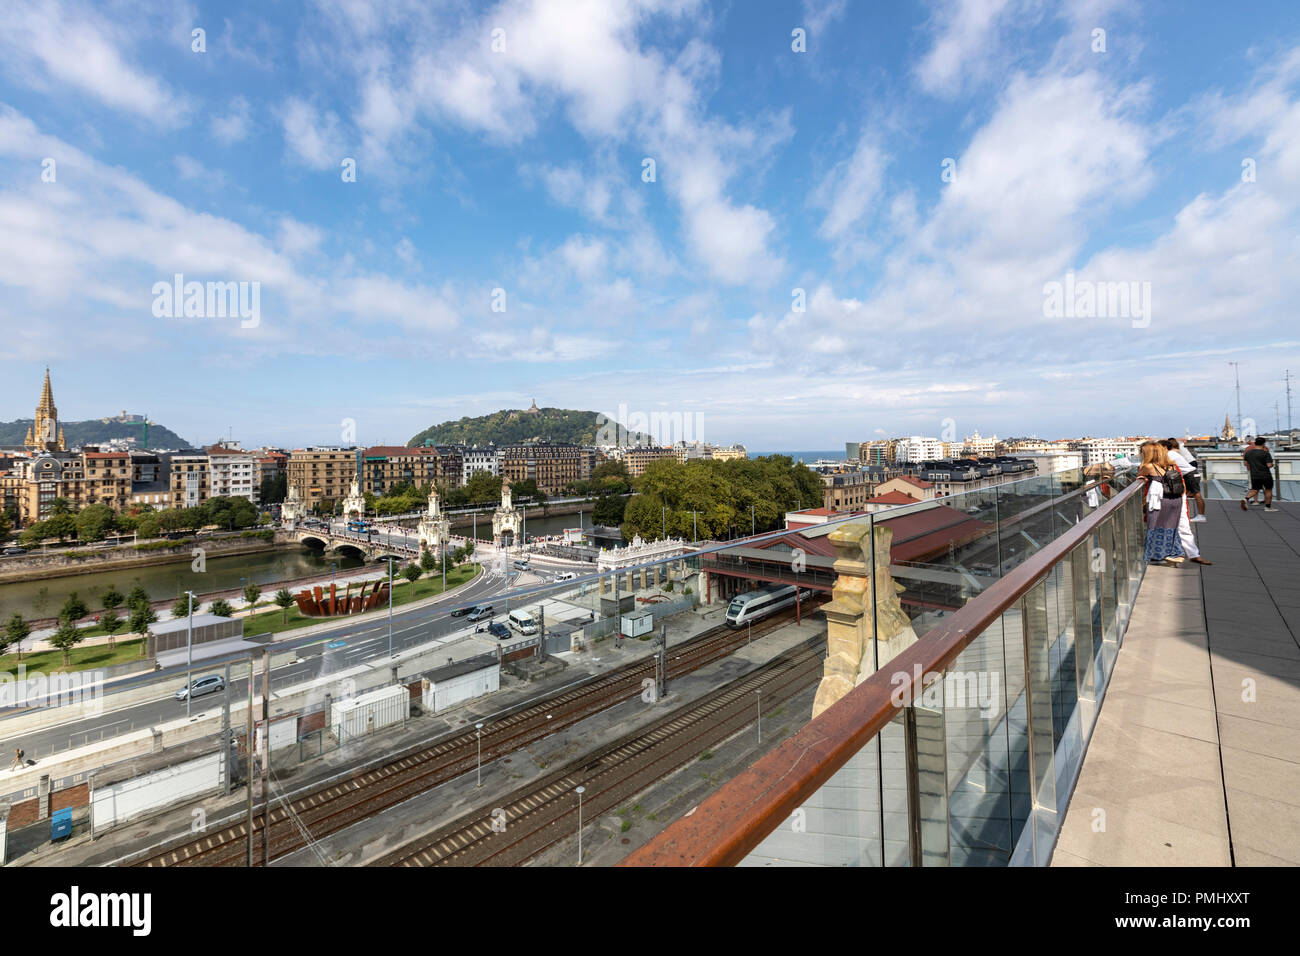 People viewing San Sebastián, with the María Cristina Bridge,  from the Terrace of Tabakalera, San Sebastián, Basque Country, Spain - Stock Image